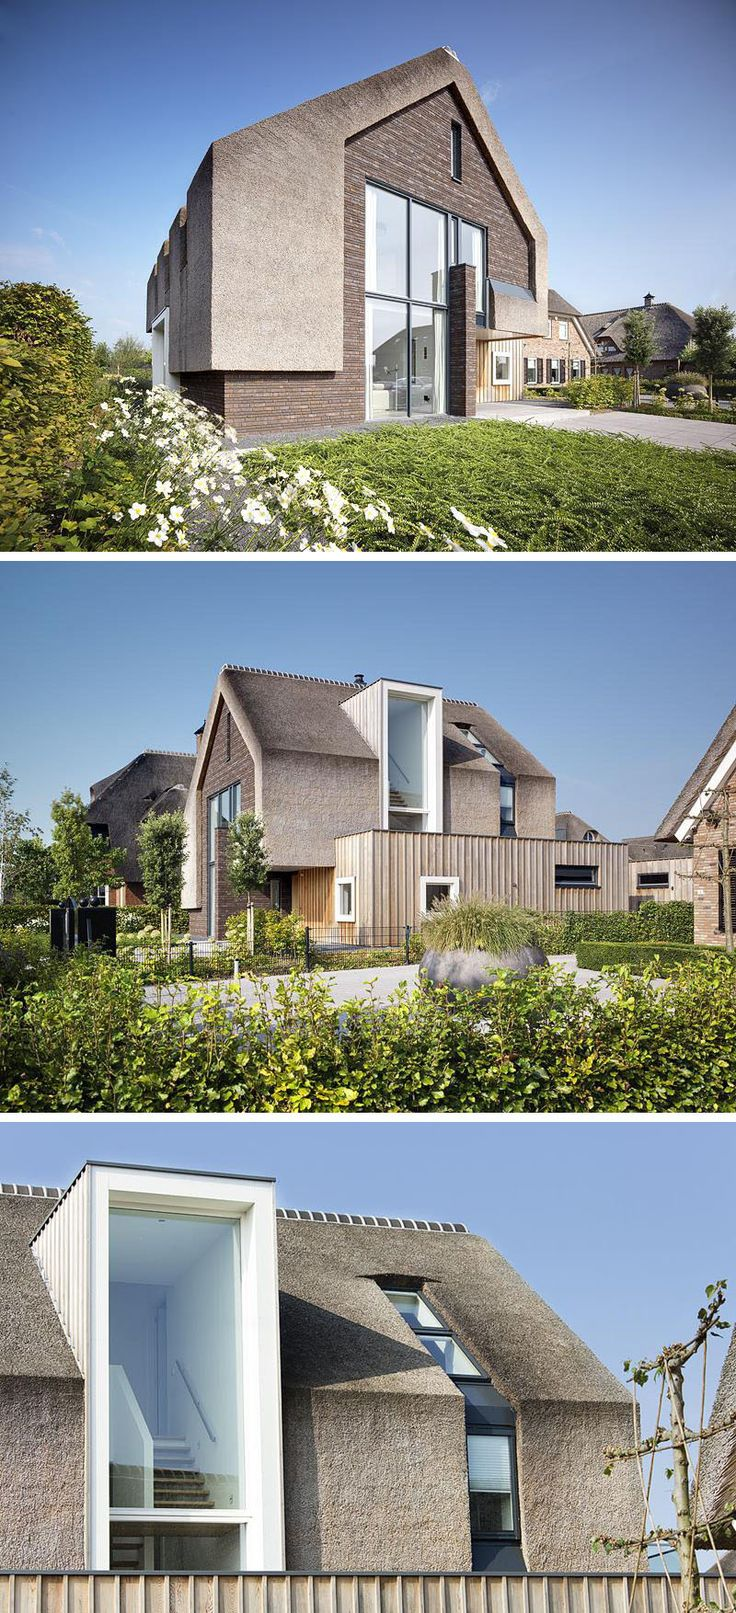 12 Examples Of Modern Houses And Buildings That Have A Thatched Roof // Traditional materials like brick, wood, and thatch used for the exterior, mix the old with the new on this modern family home.